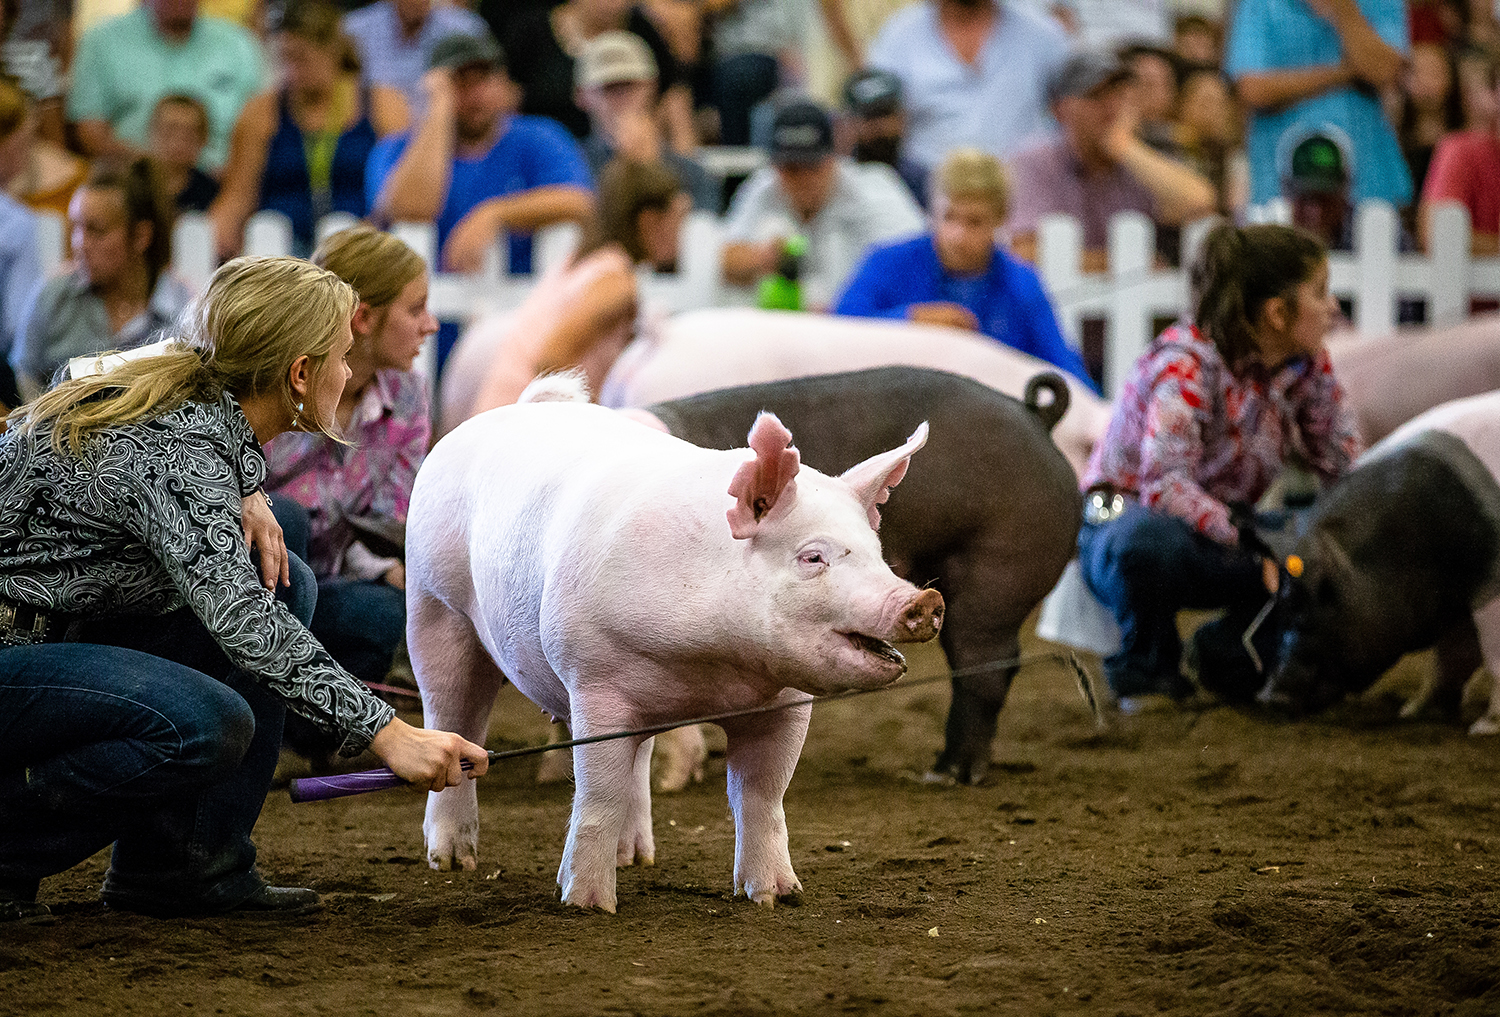 The barrows are kept at attention during judging in the Parade of Champions at the Livestock Center during the Illinois State Fair at the Illinois State Fairgrounds, Saturday, Aug. 11, 2018, in Springfield, Ill. [Justin L. Fowler/The State Journal-Register]